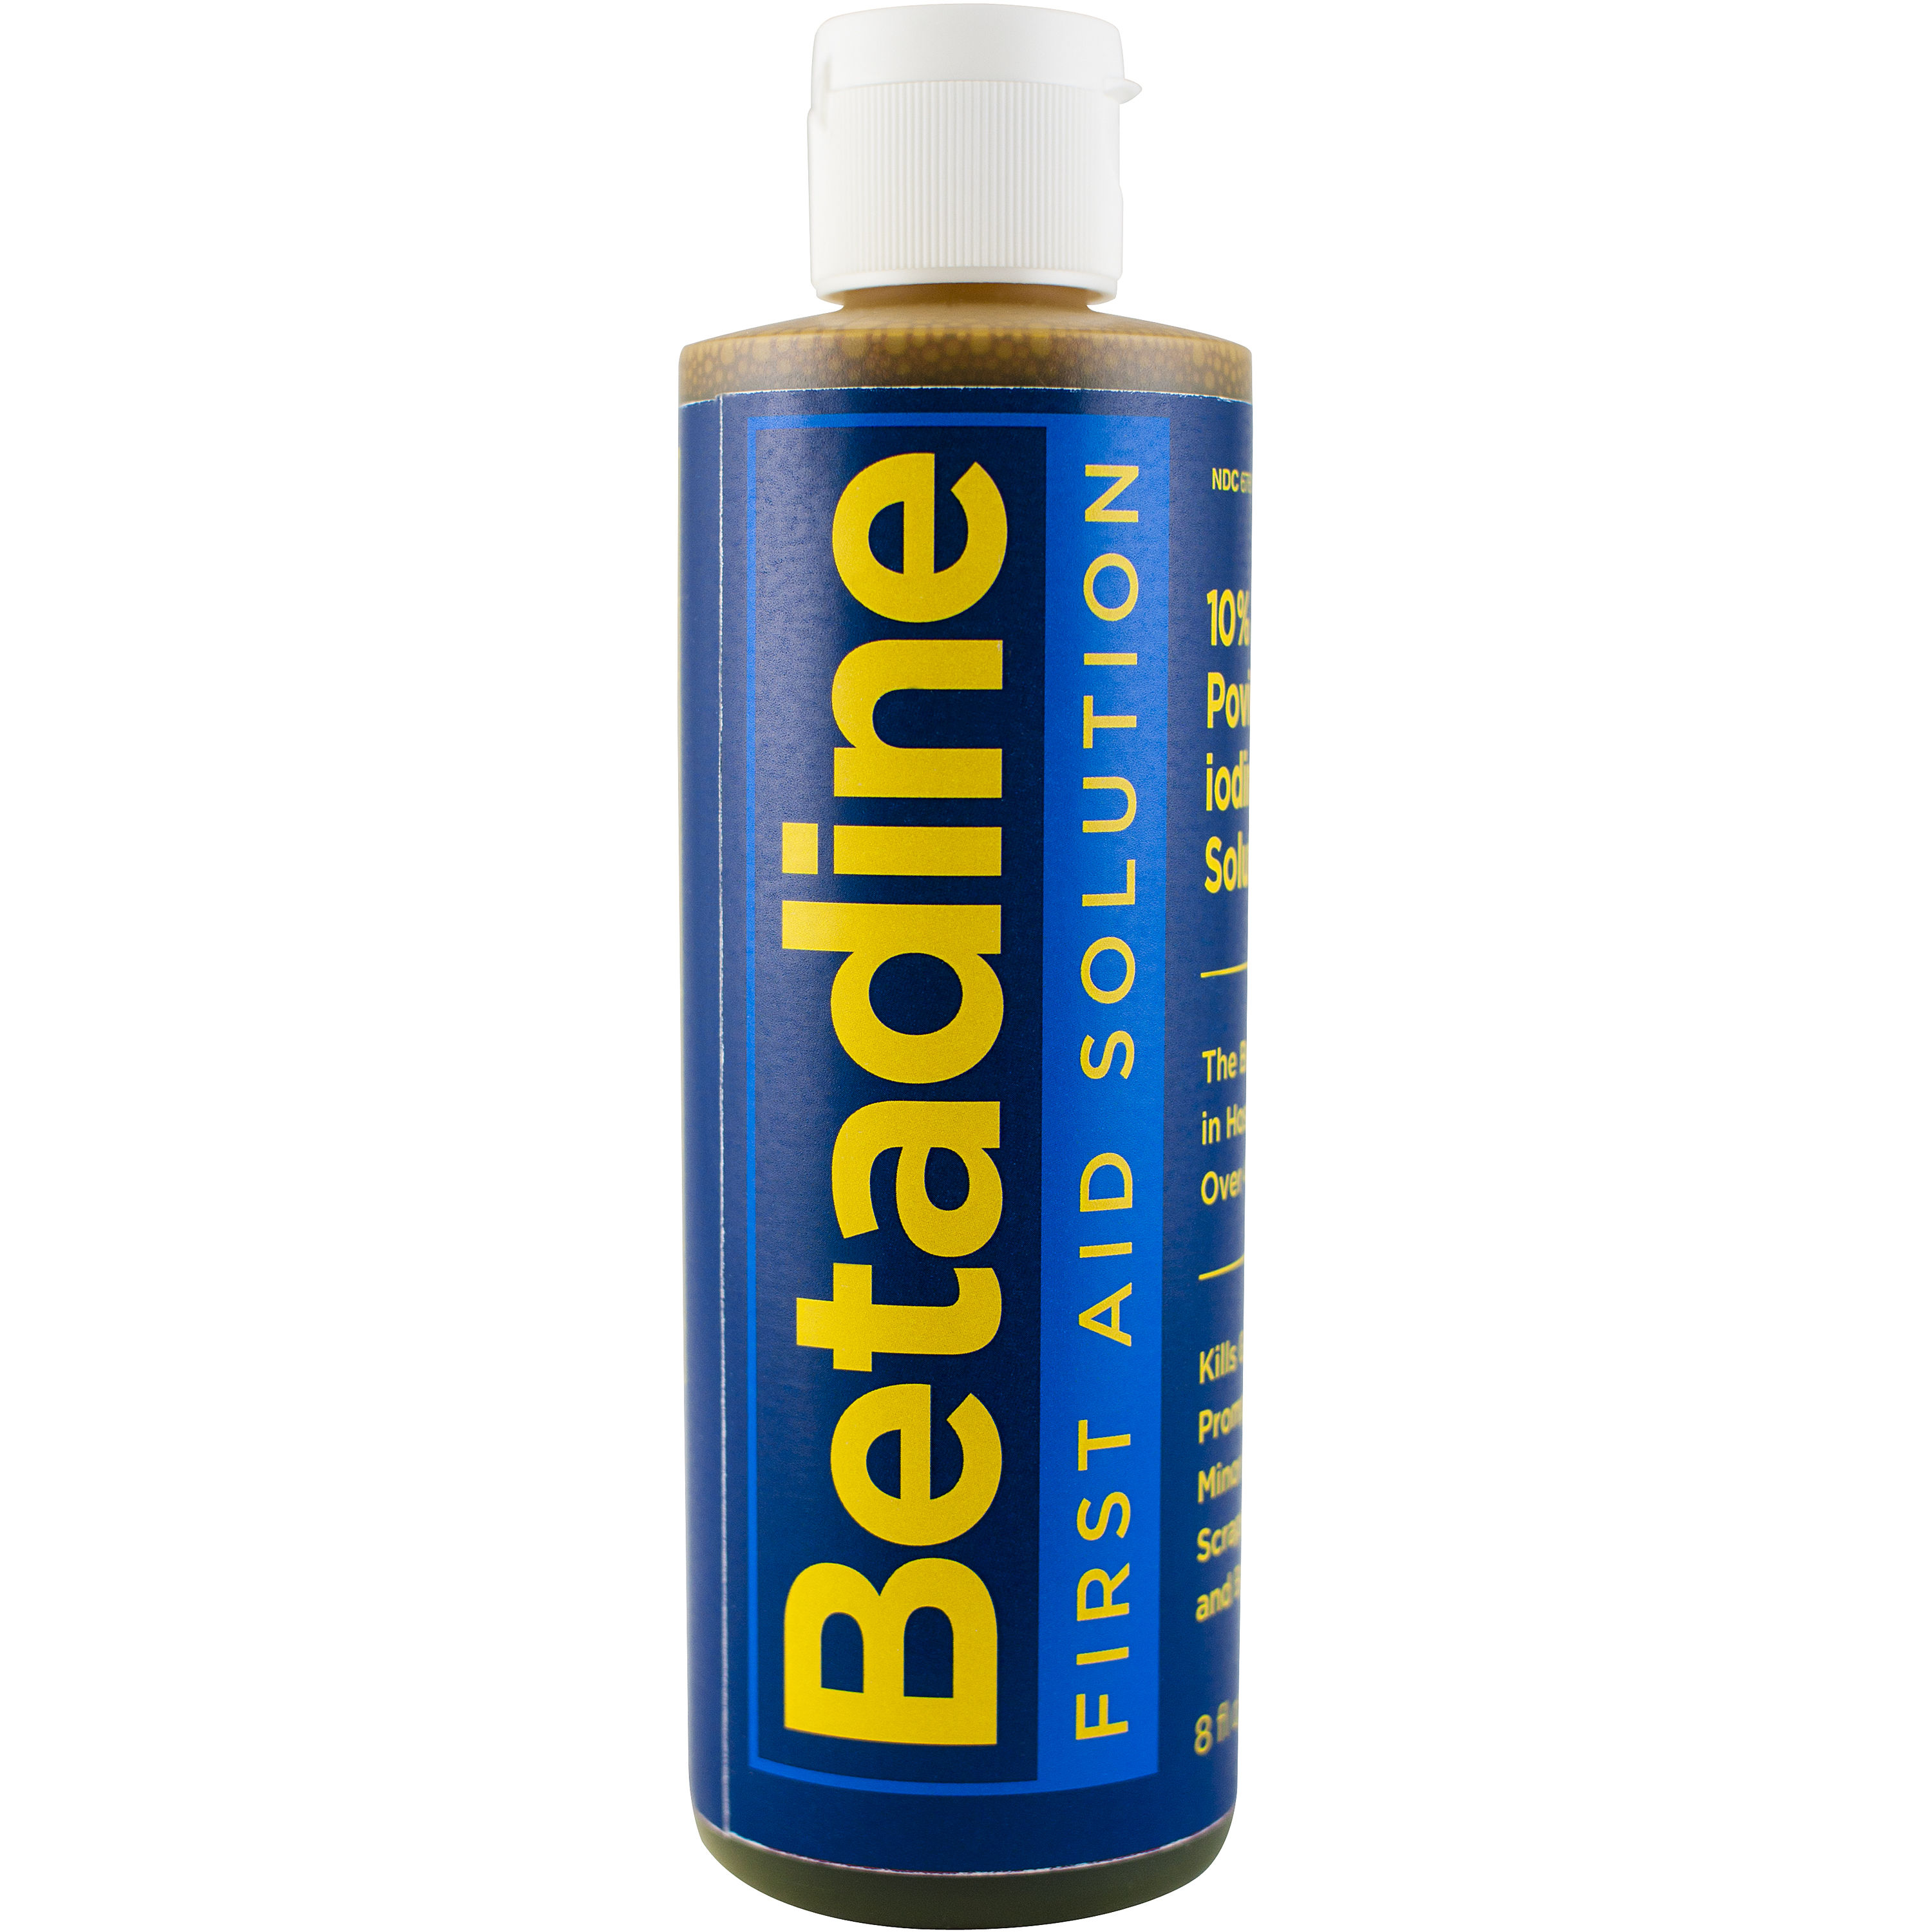 Betadine Solution, 8 fl oz